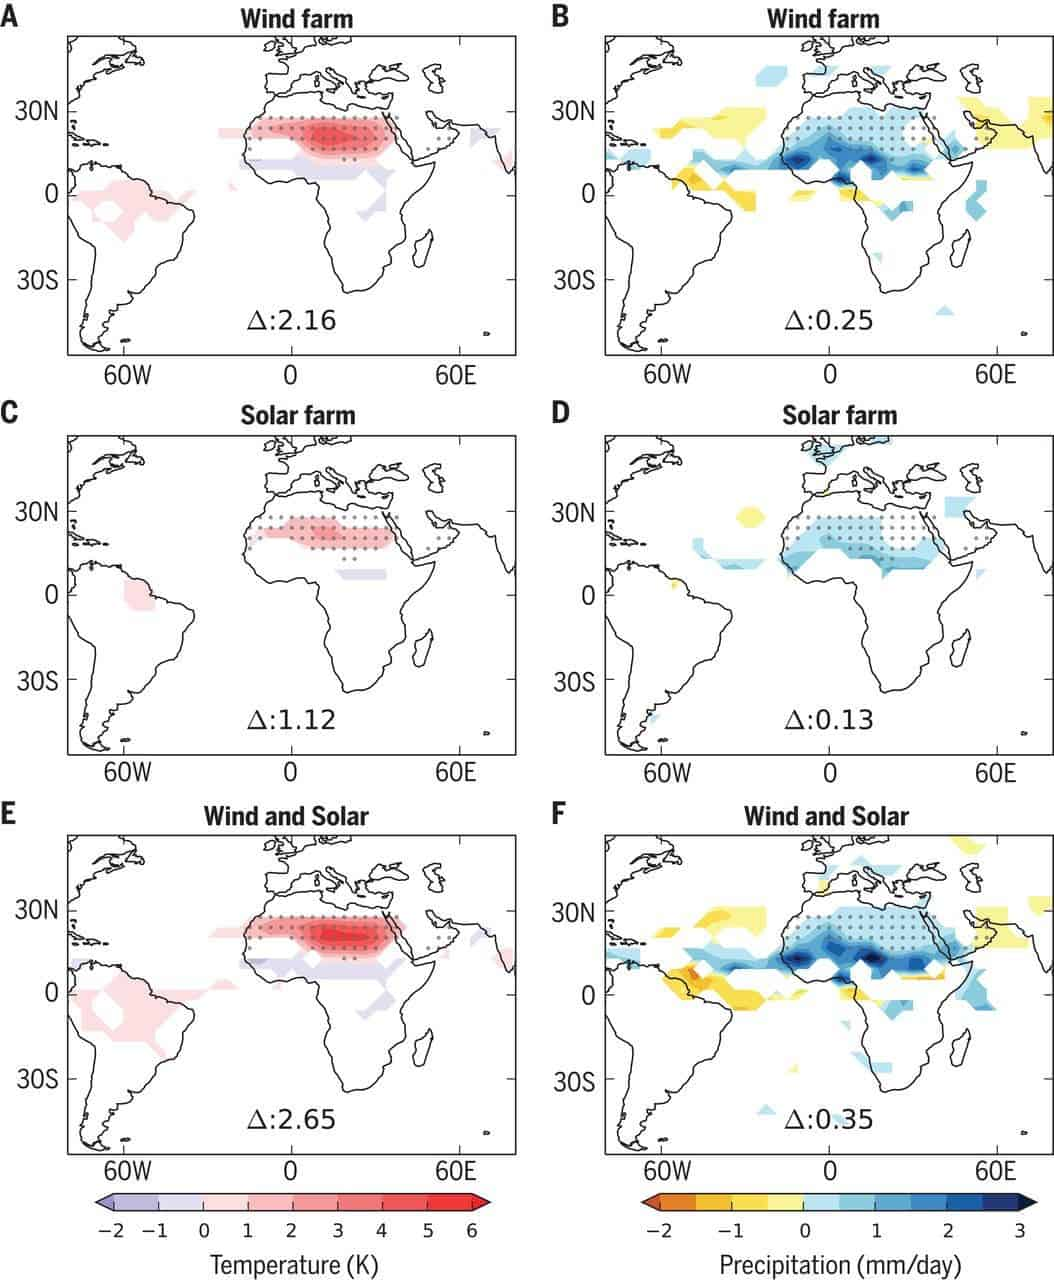 Large-scale wind and solar power 'could green the Sahara'